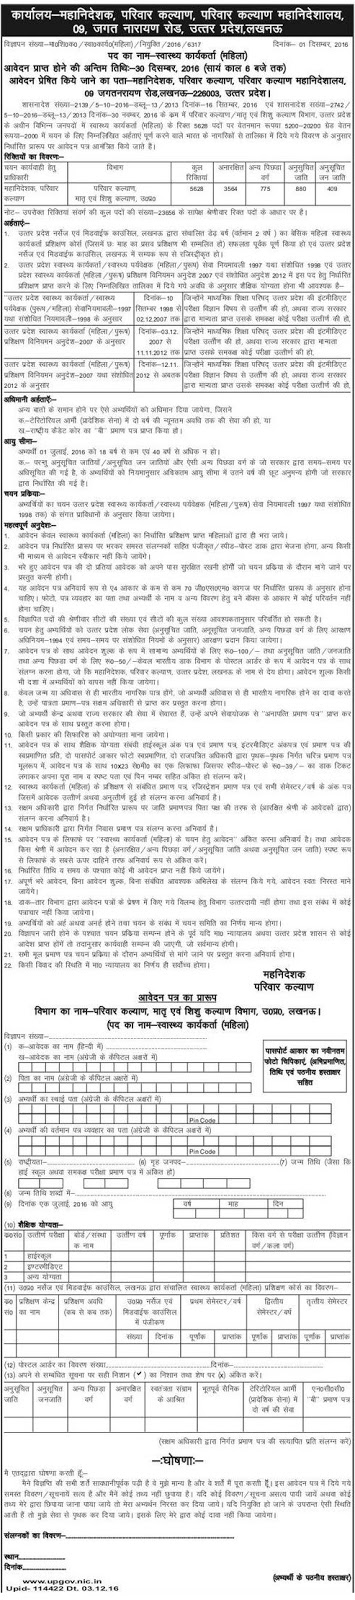 ✉ UP Swasthya Vibhag Recruitment 2018 2000 Staff Nurse, Pharmacist, ANM, Doctor ✉